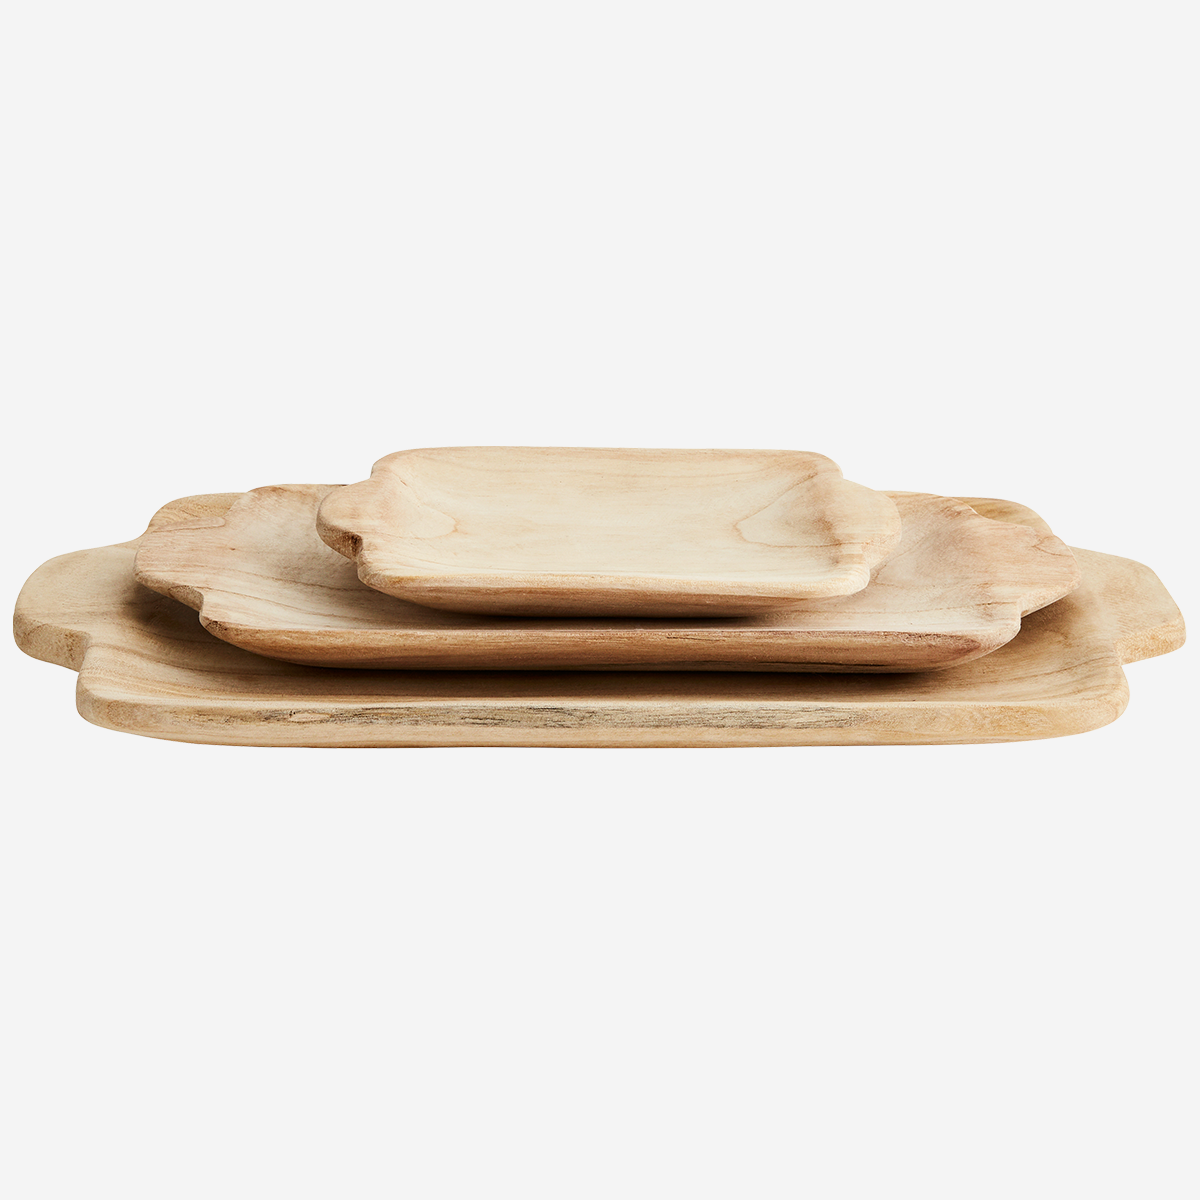 Rectangular wooden trays